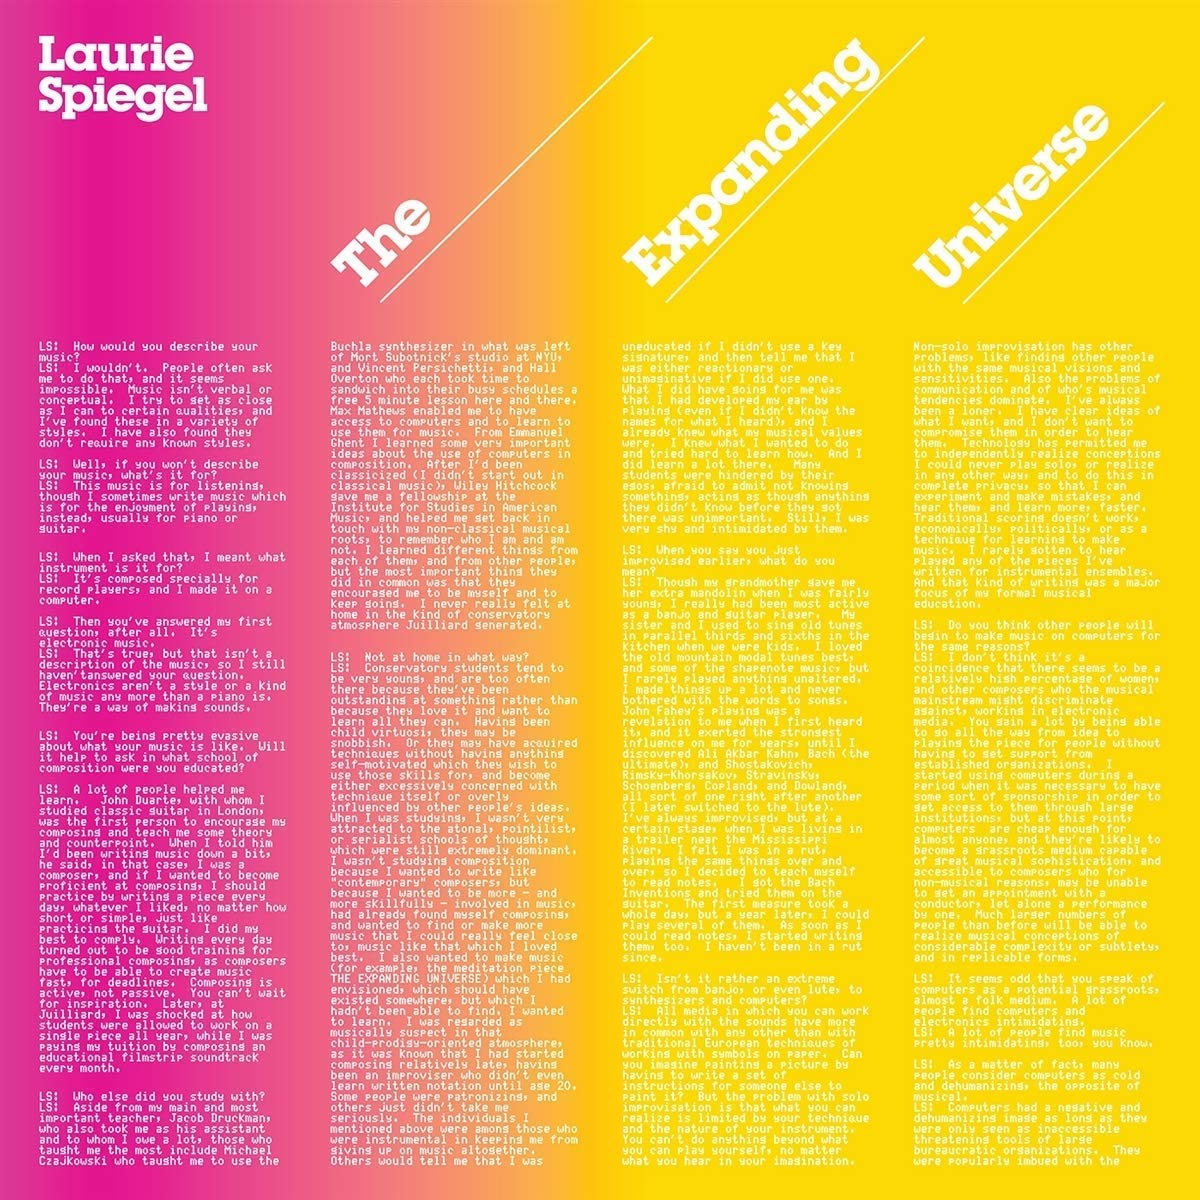 Laurie Spiegel - The Expanding Universe